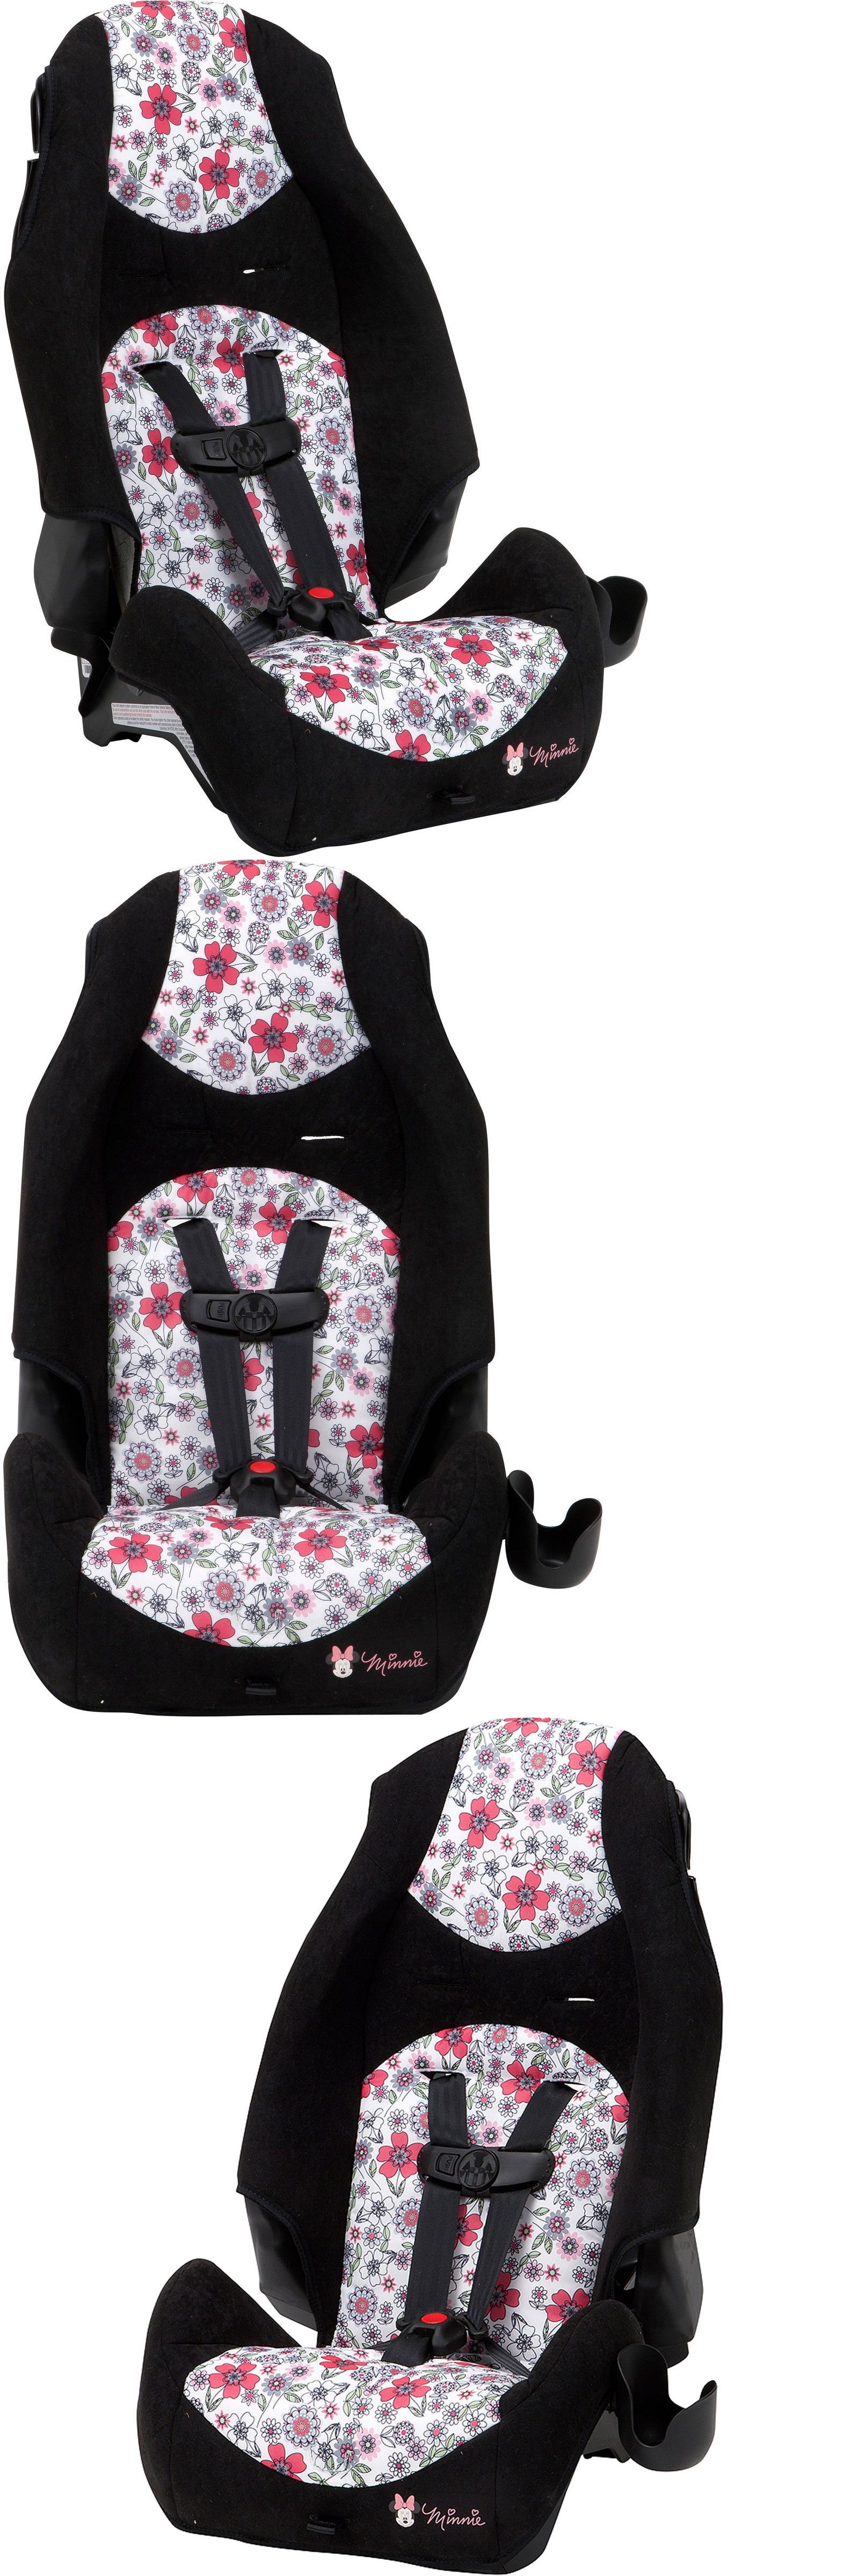 Booster To 80lbs 66694 Car Seat Disney Girls Minnie Mouse Toddler Children High Back Safety BUY IT NOW ONLY 6366 On EBay